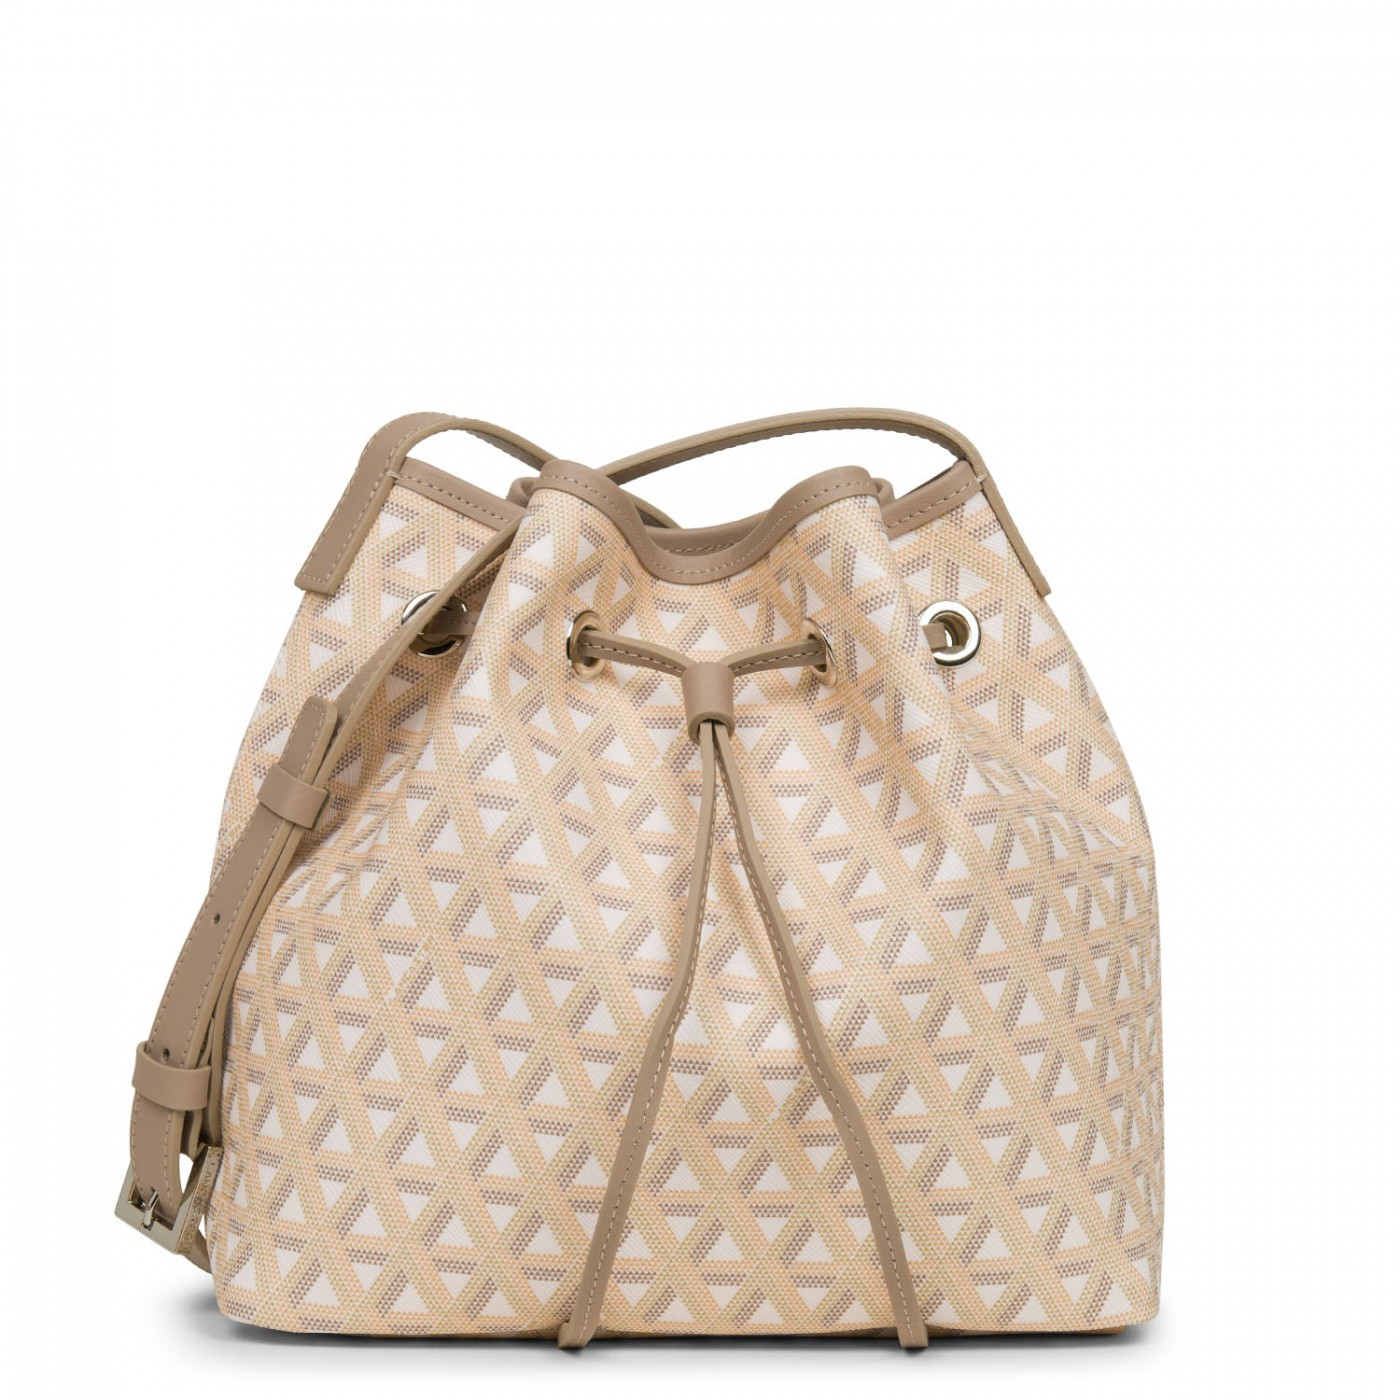 LANCASTER IKON BUCKET BAG - BROWN